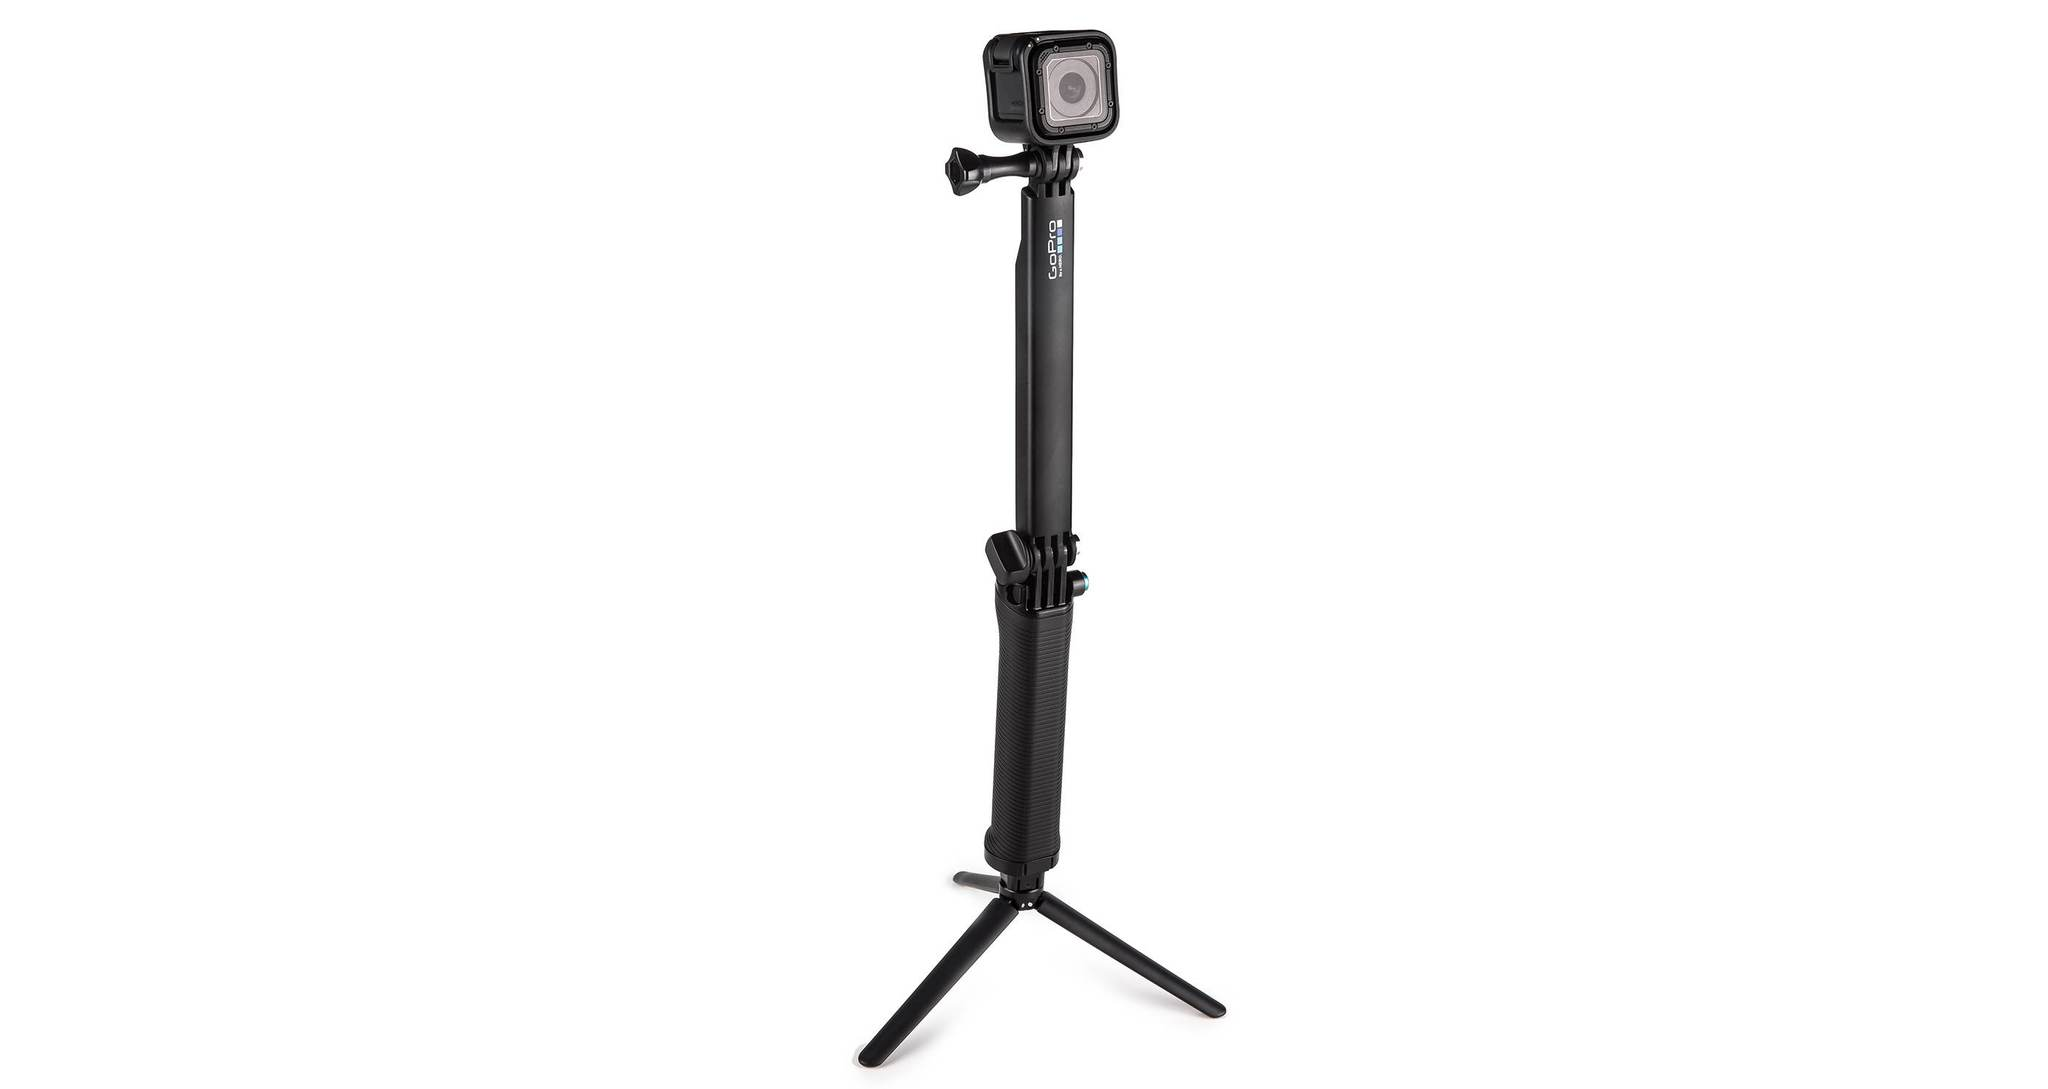 Монопод-штатив GoPro AFAEM-001 3-Way Mount - Grip/Arm/Tripod 2\3